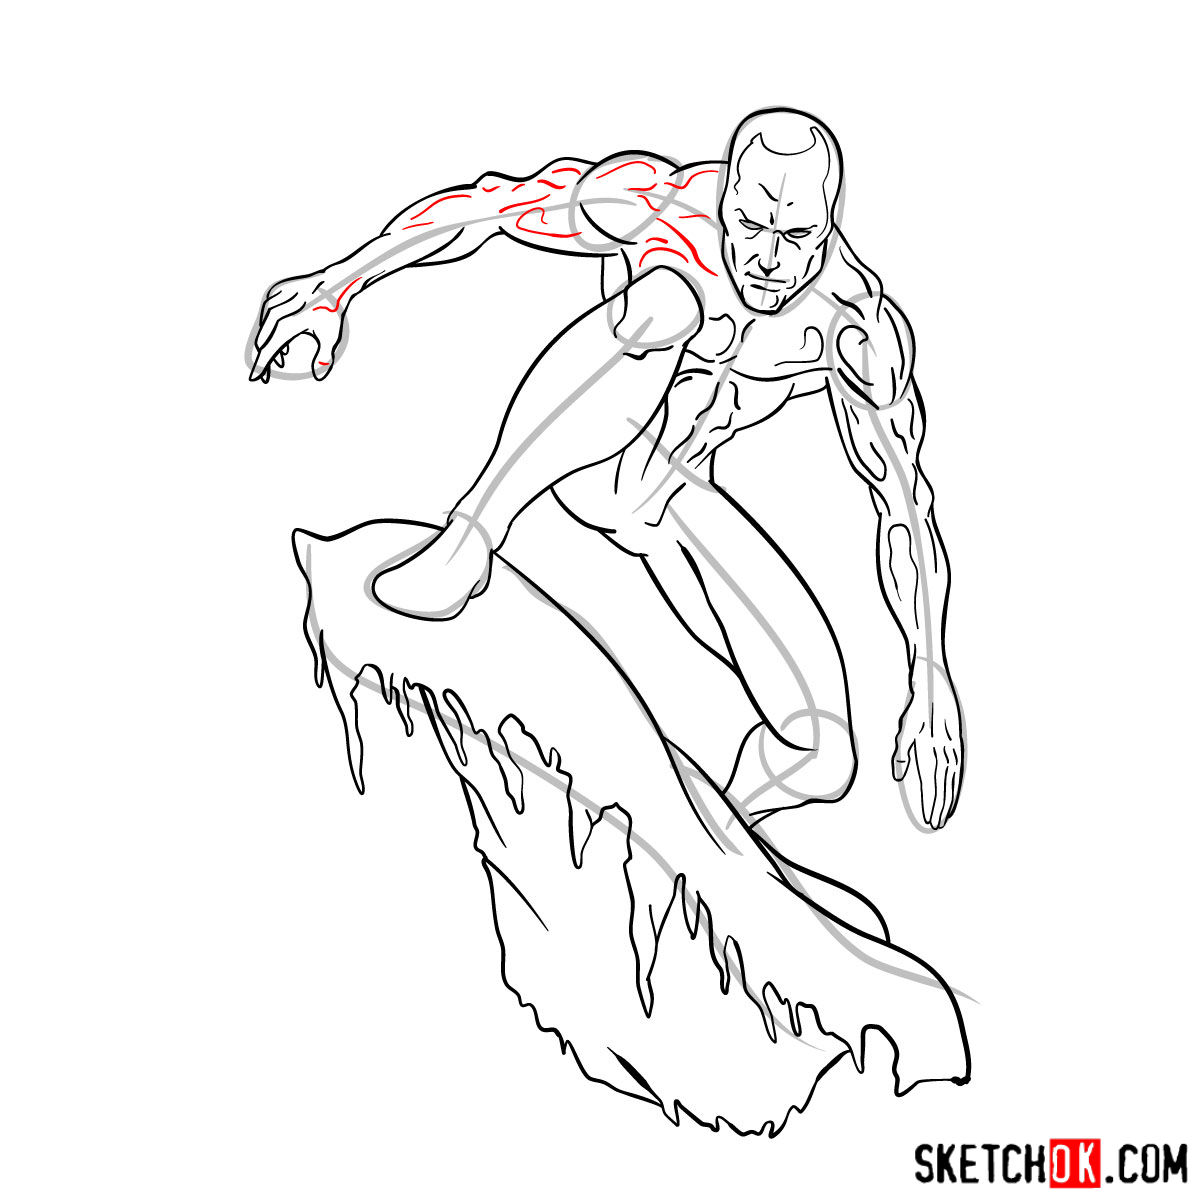 How to draw Iceman - step by step drawing tutorial - step 14